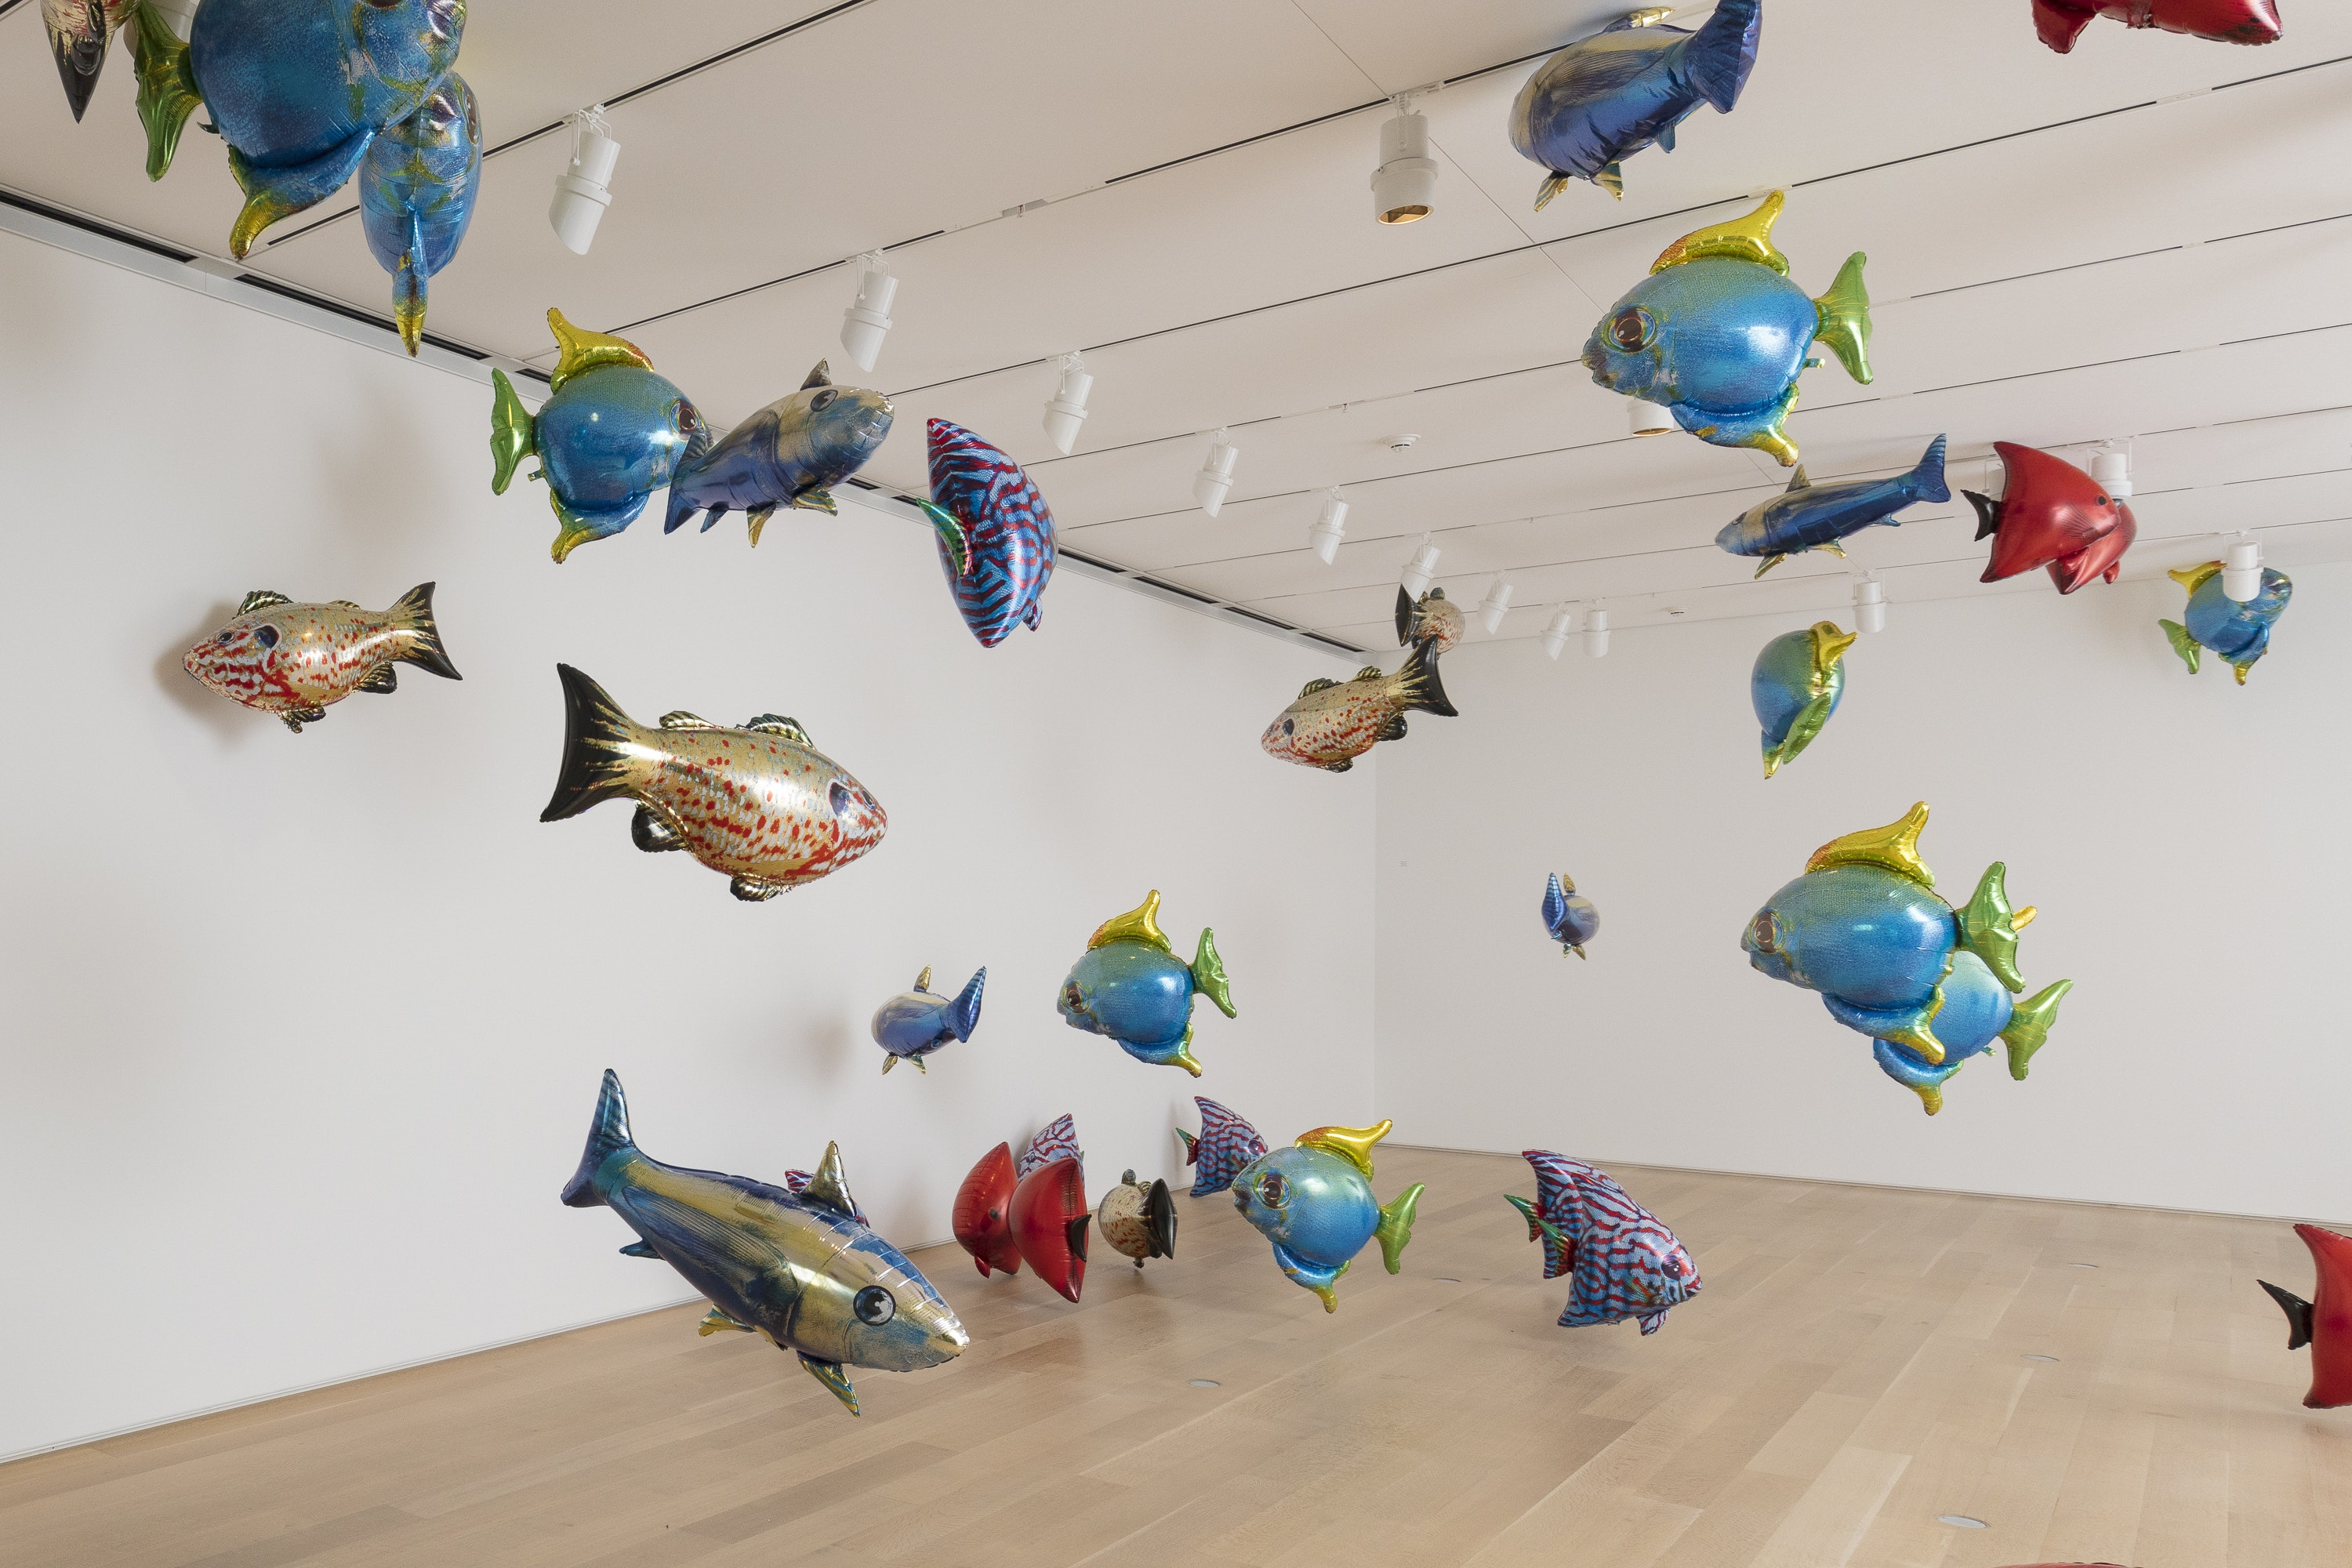 Photo of an installation of metallic, brightly colored, fish-shaped balloons in a room with white walls and wooden floors.